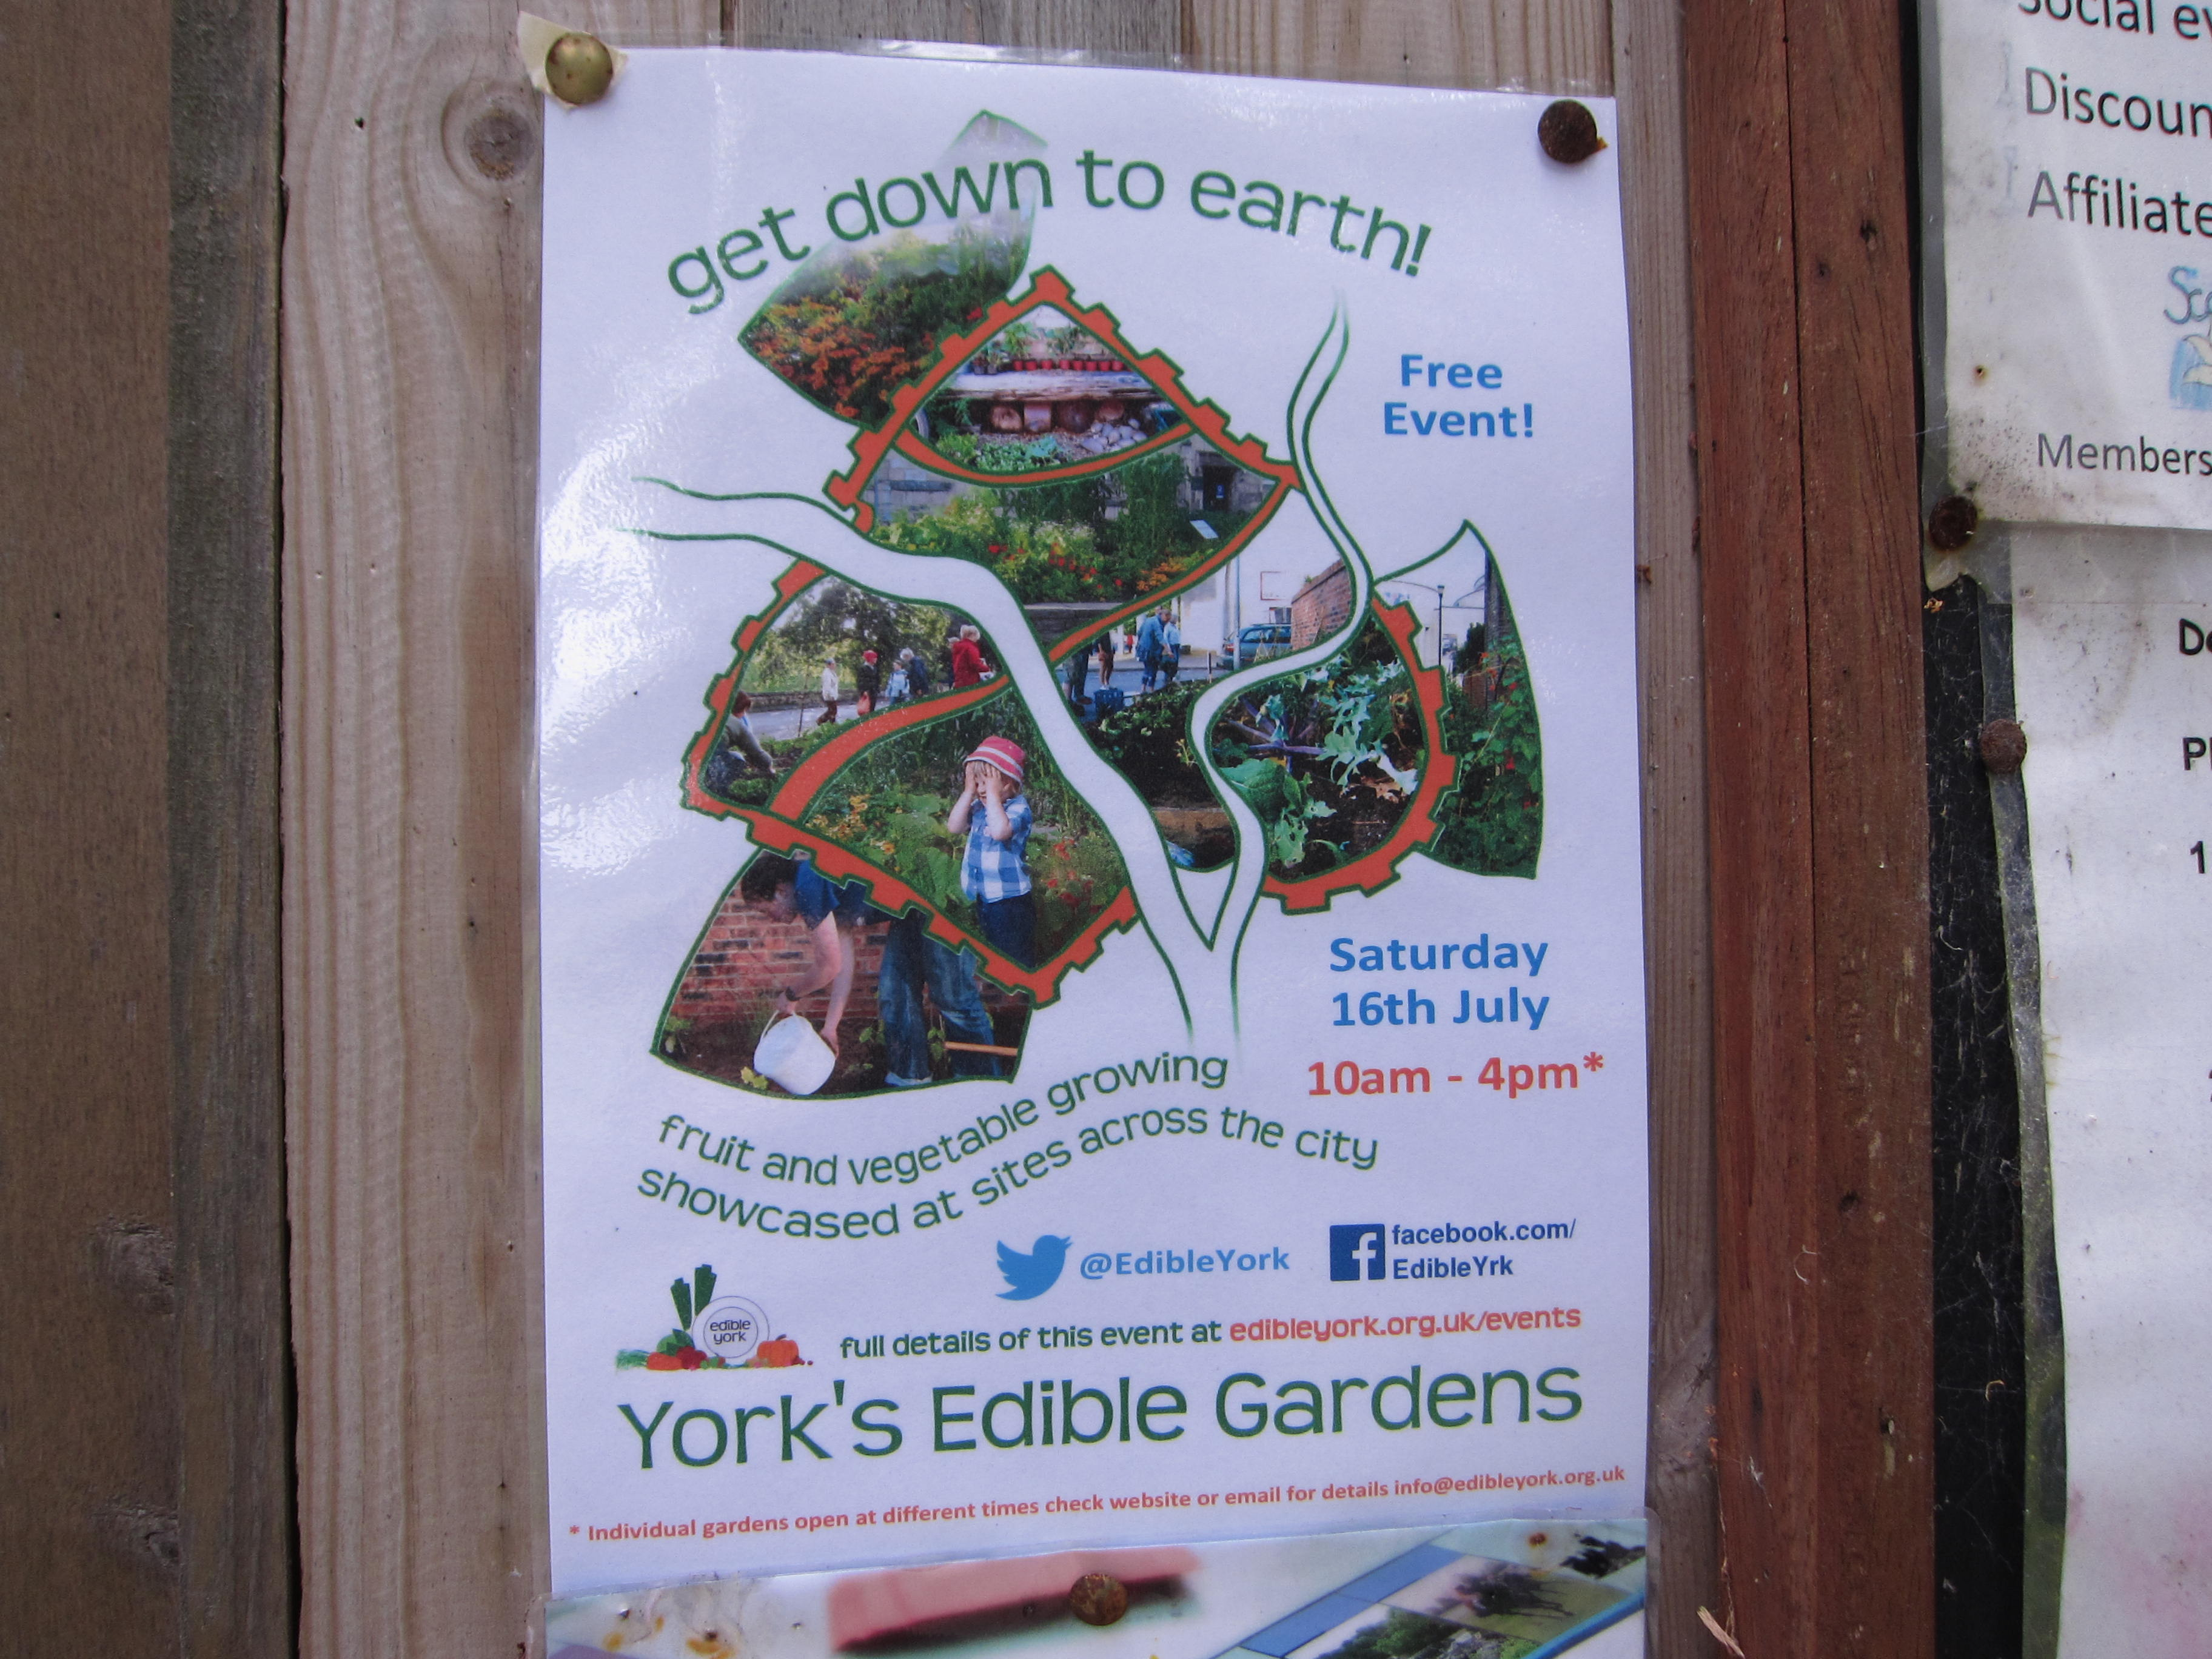 York Edible Gardens is a city-wide program to support growing food in public and private spaces.